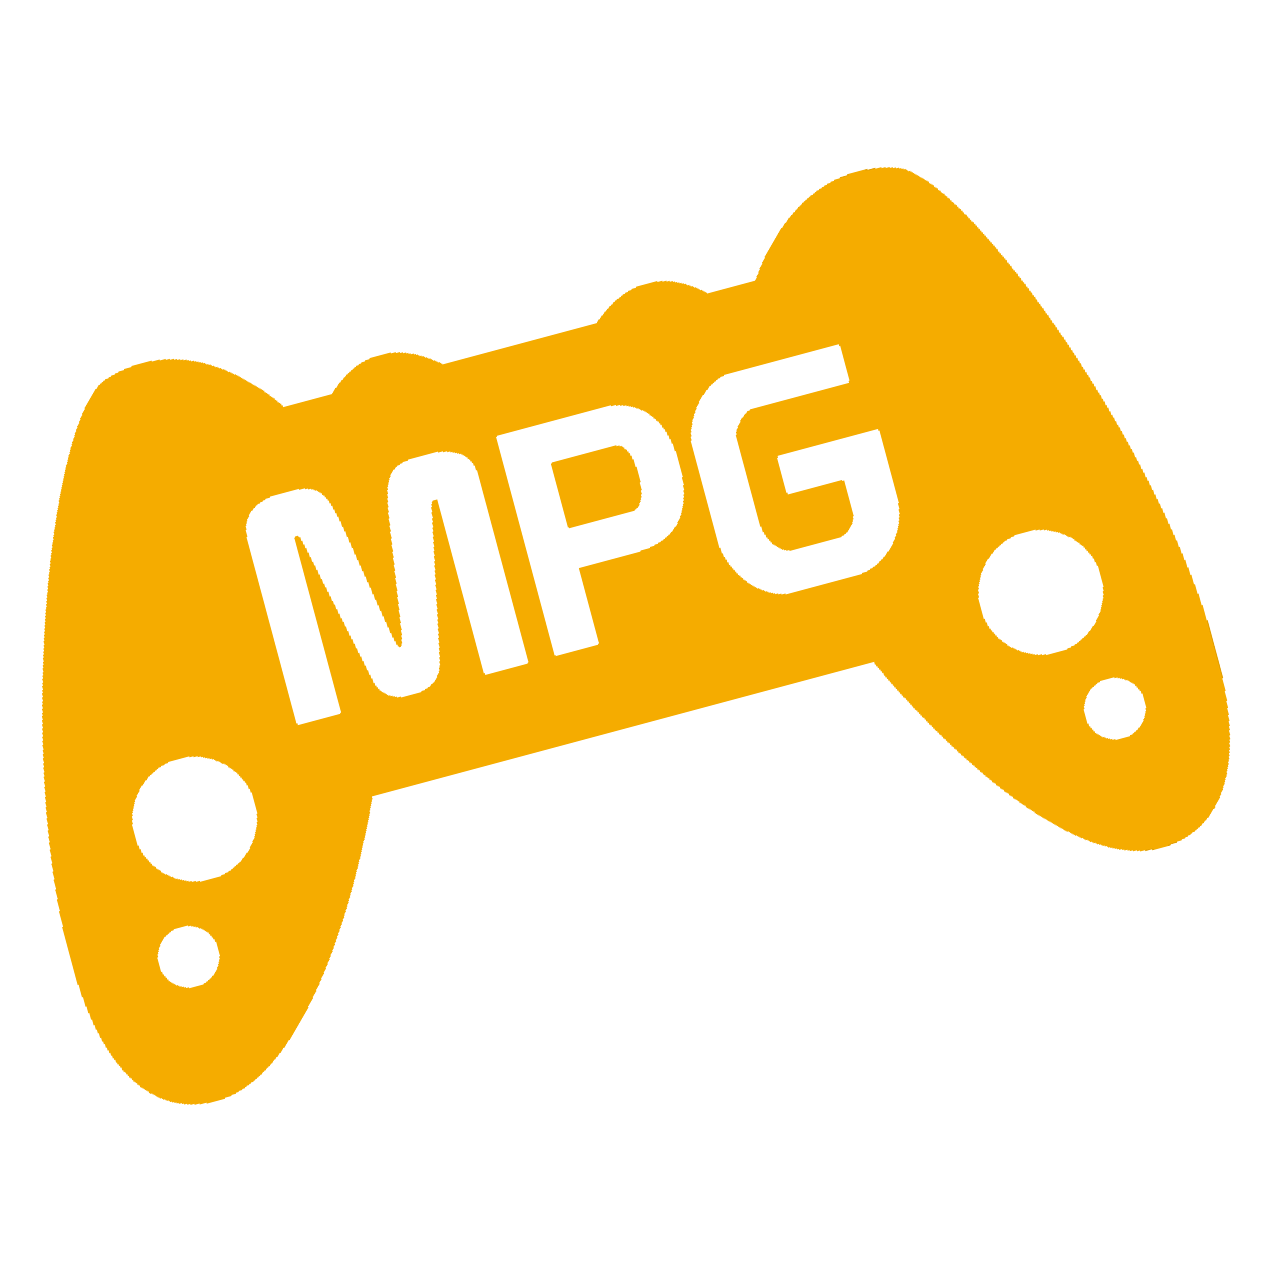 icono_mpg.png